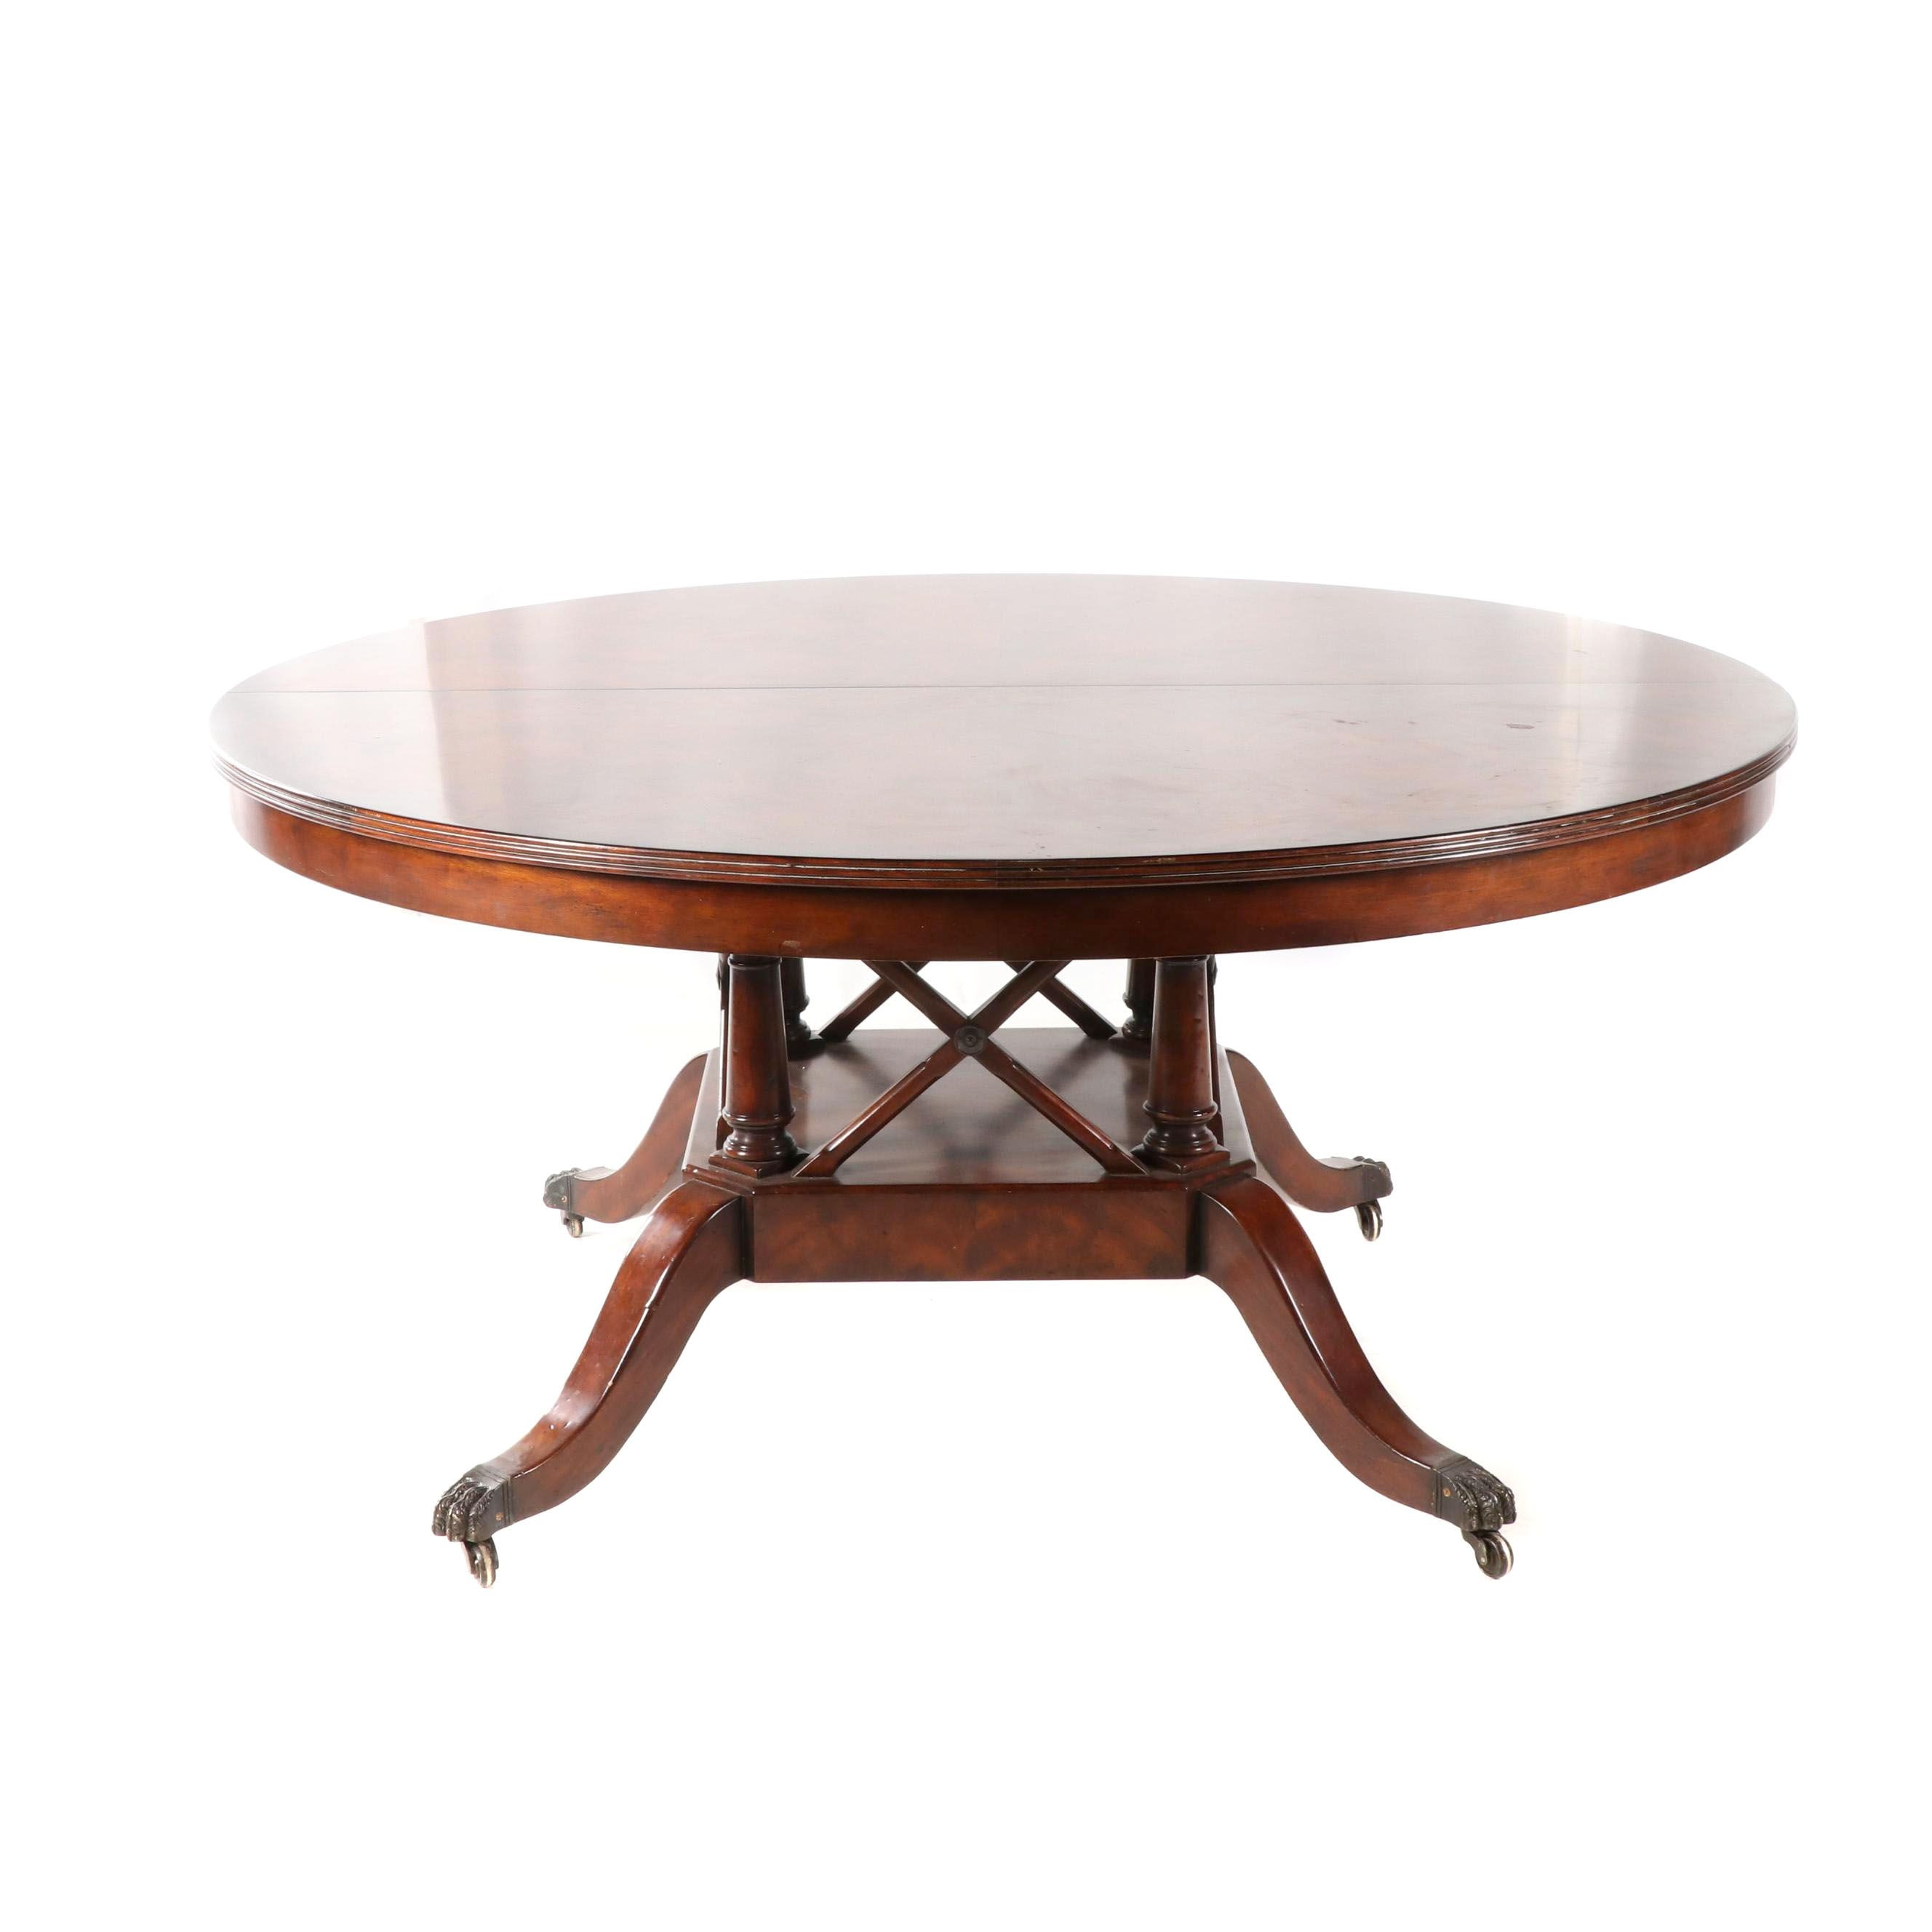 Federal Style Burl Wood Dining Table on Casters, Late 20th Century